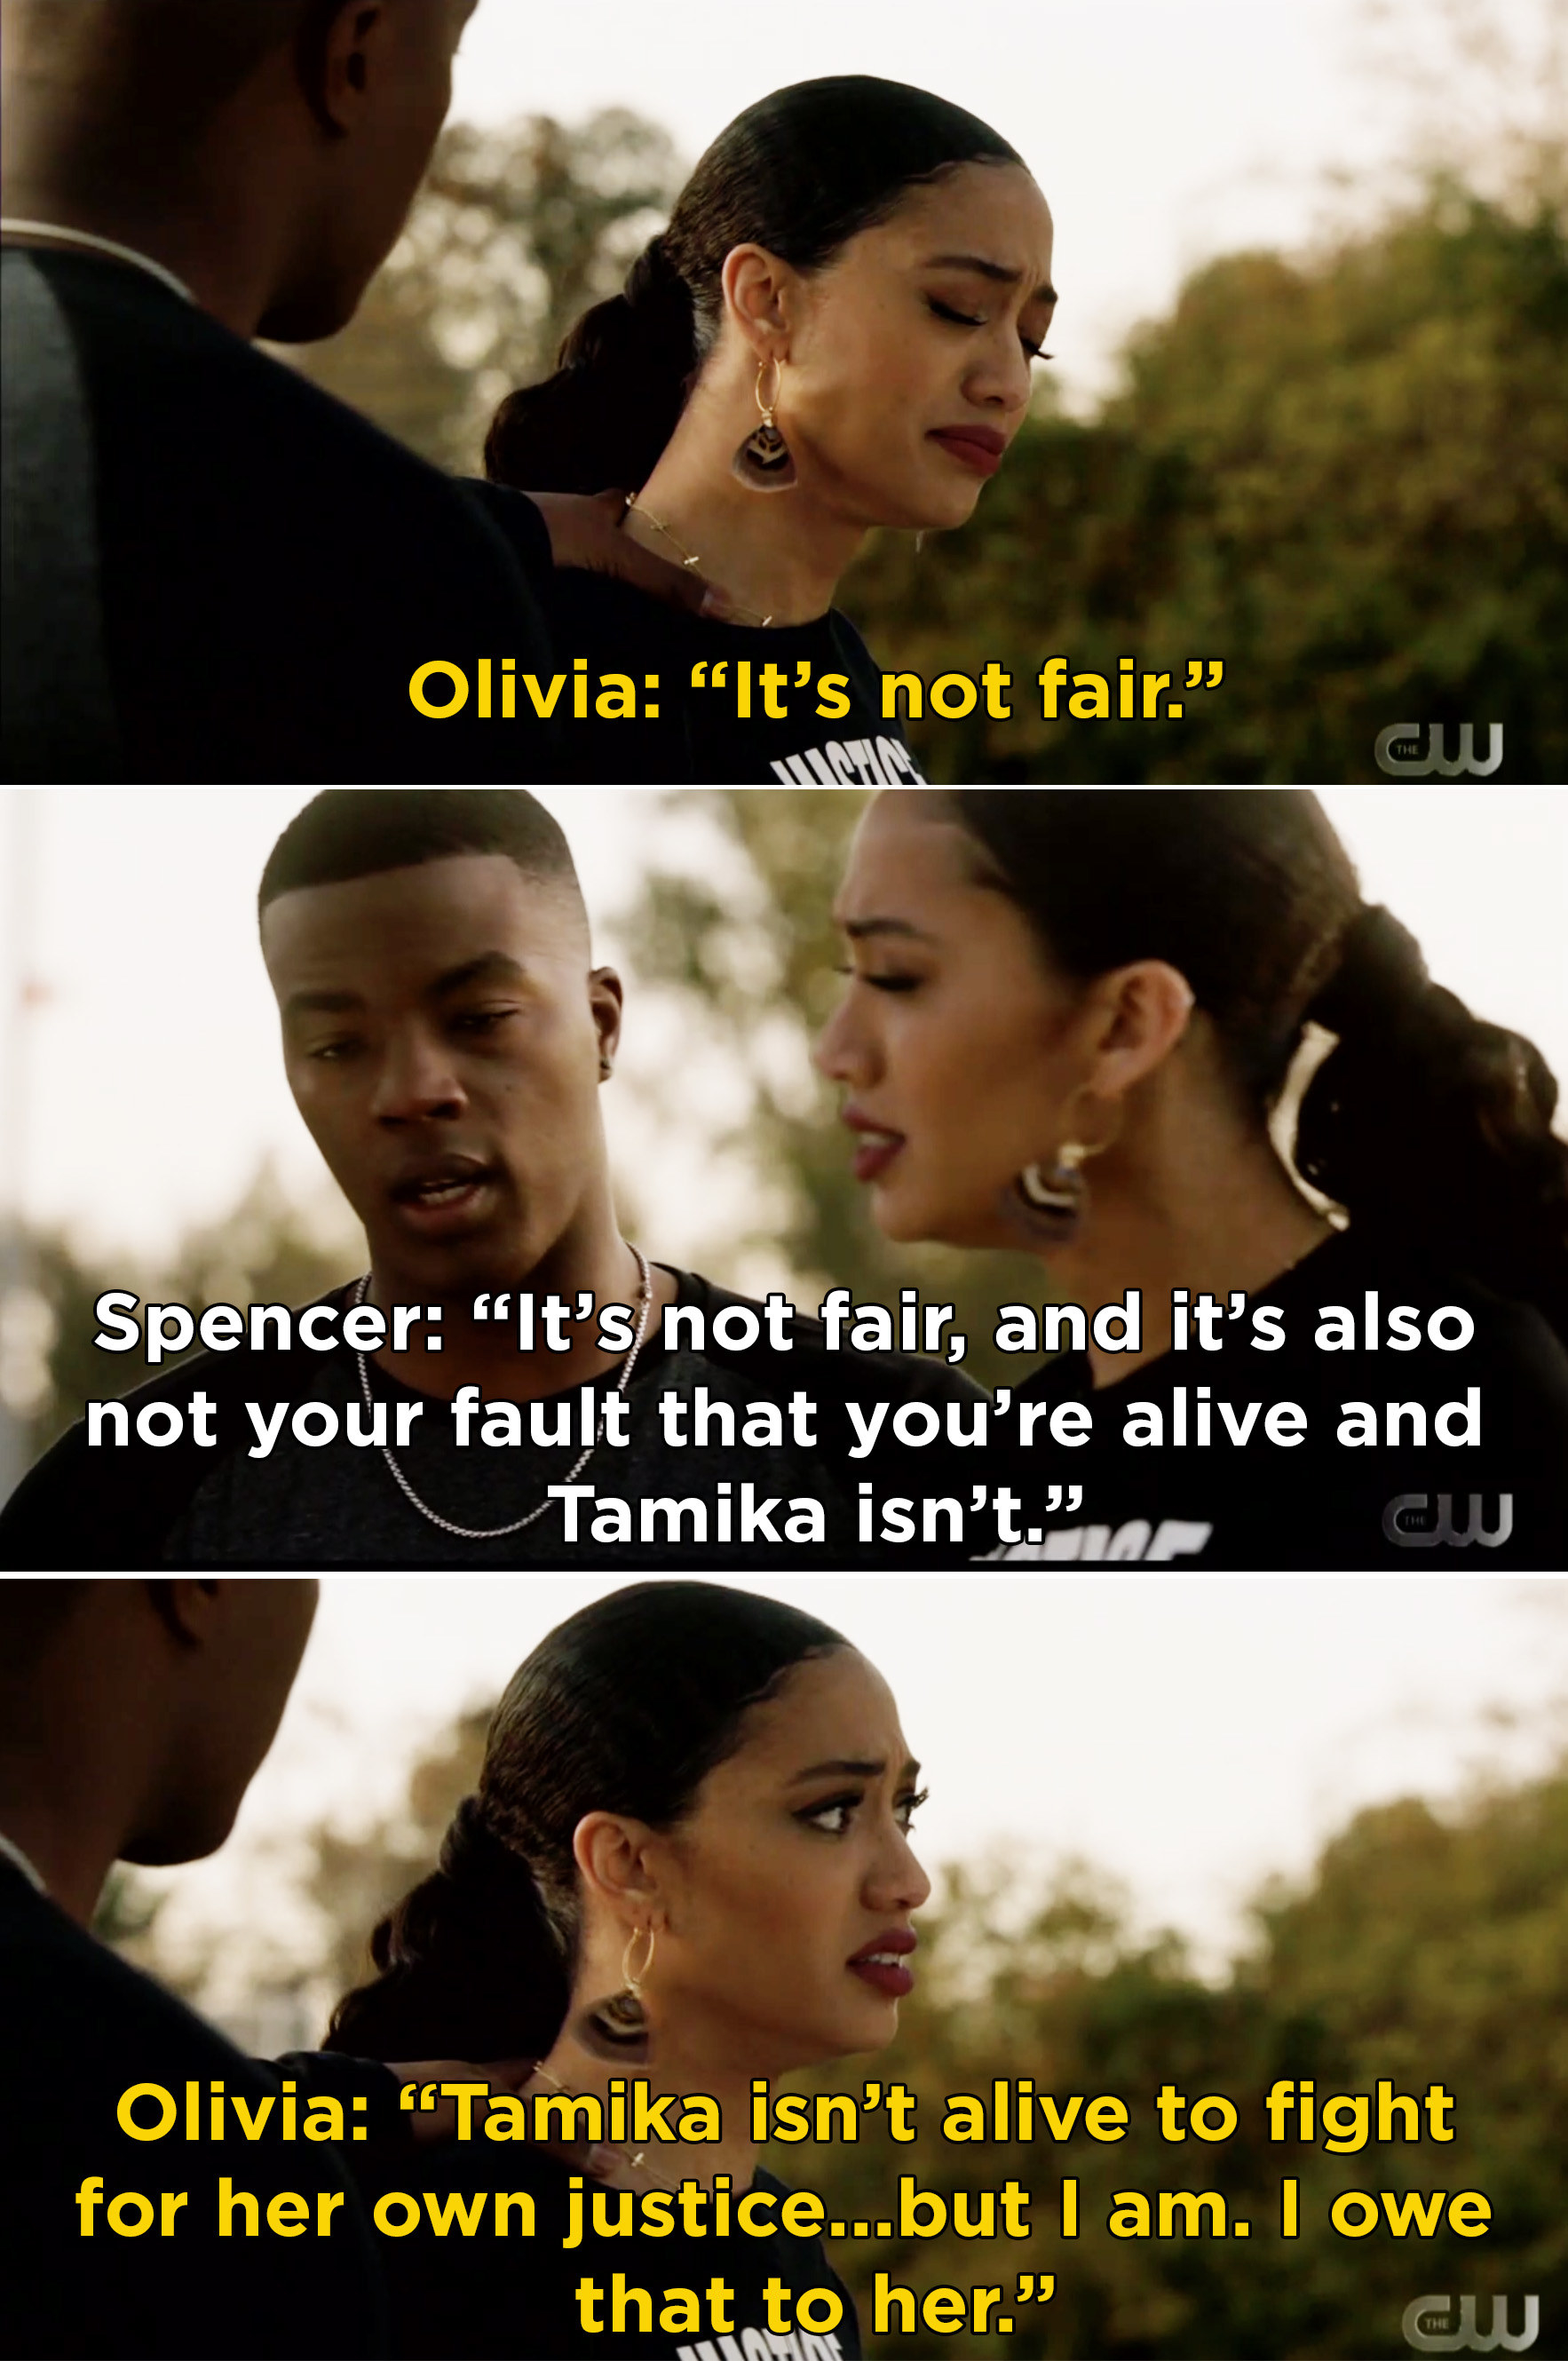 Olivia telling Spencer that she is going to fight for Tamika's justice